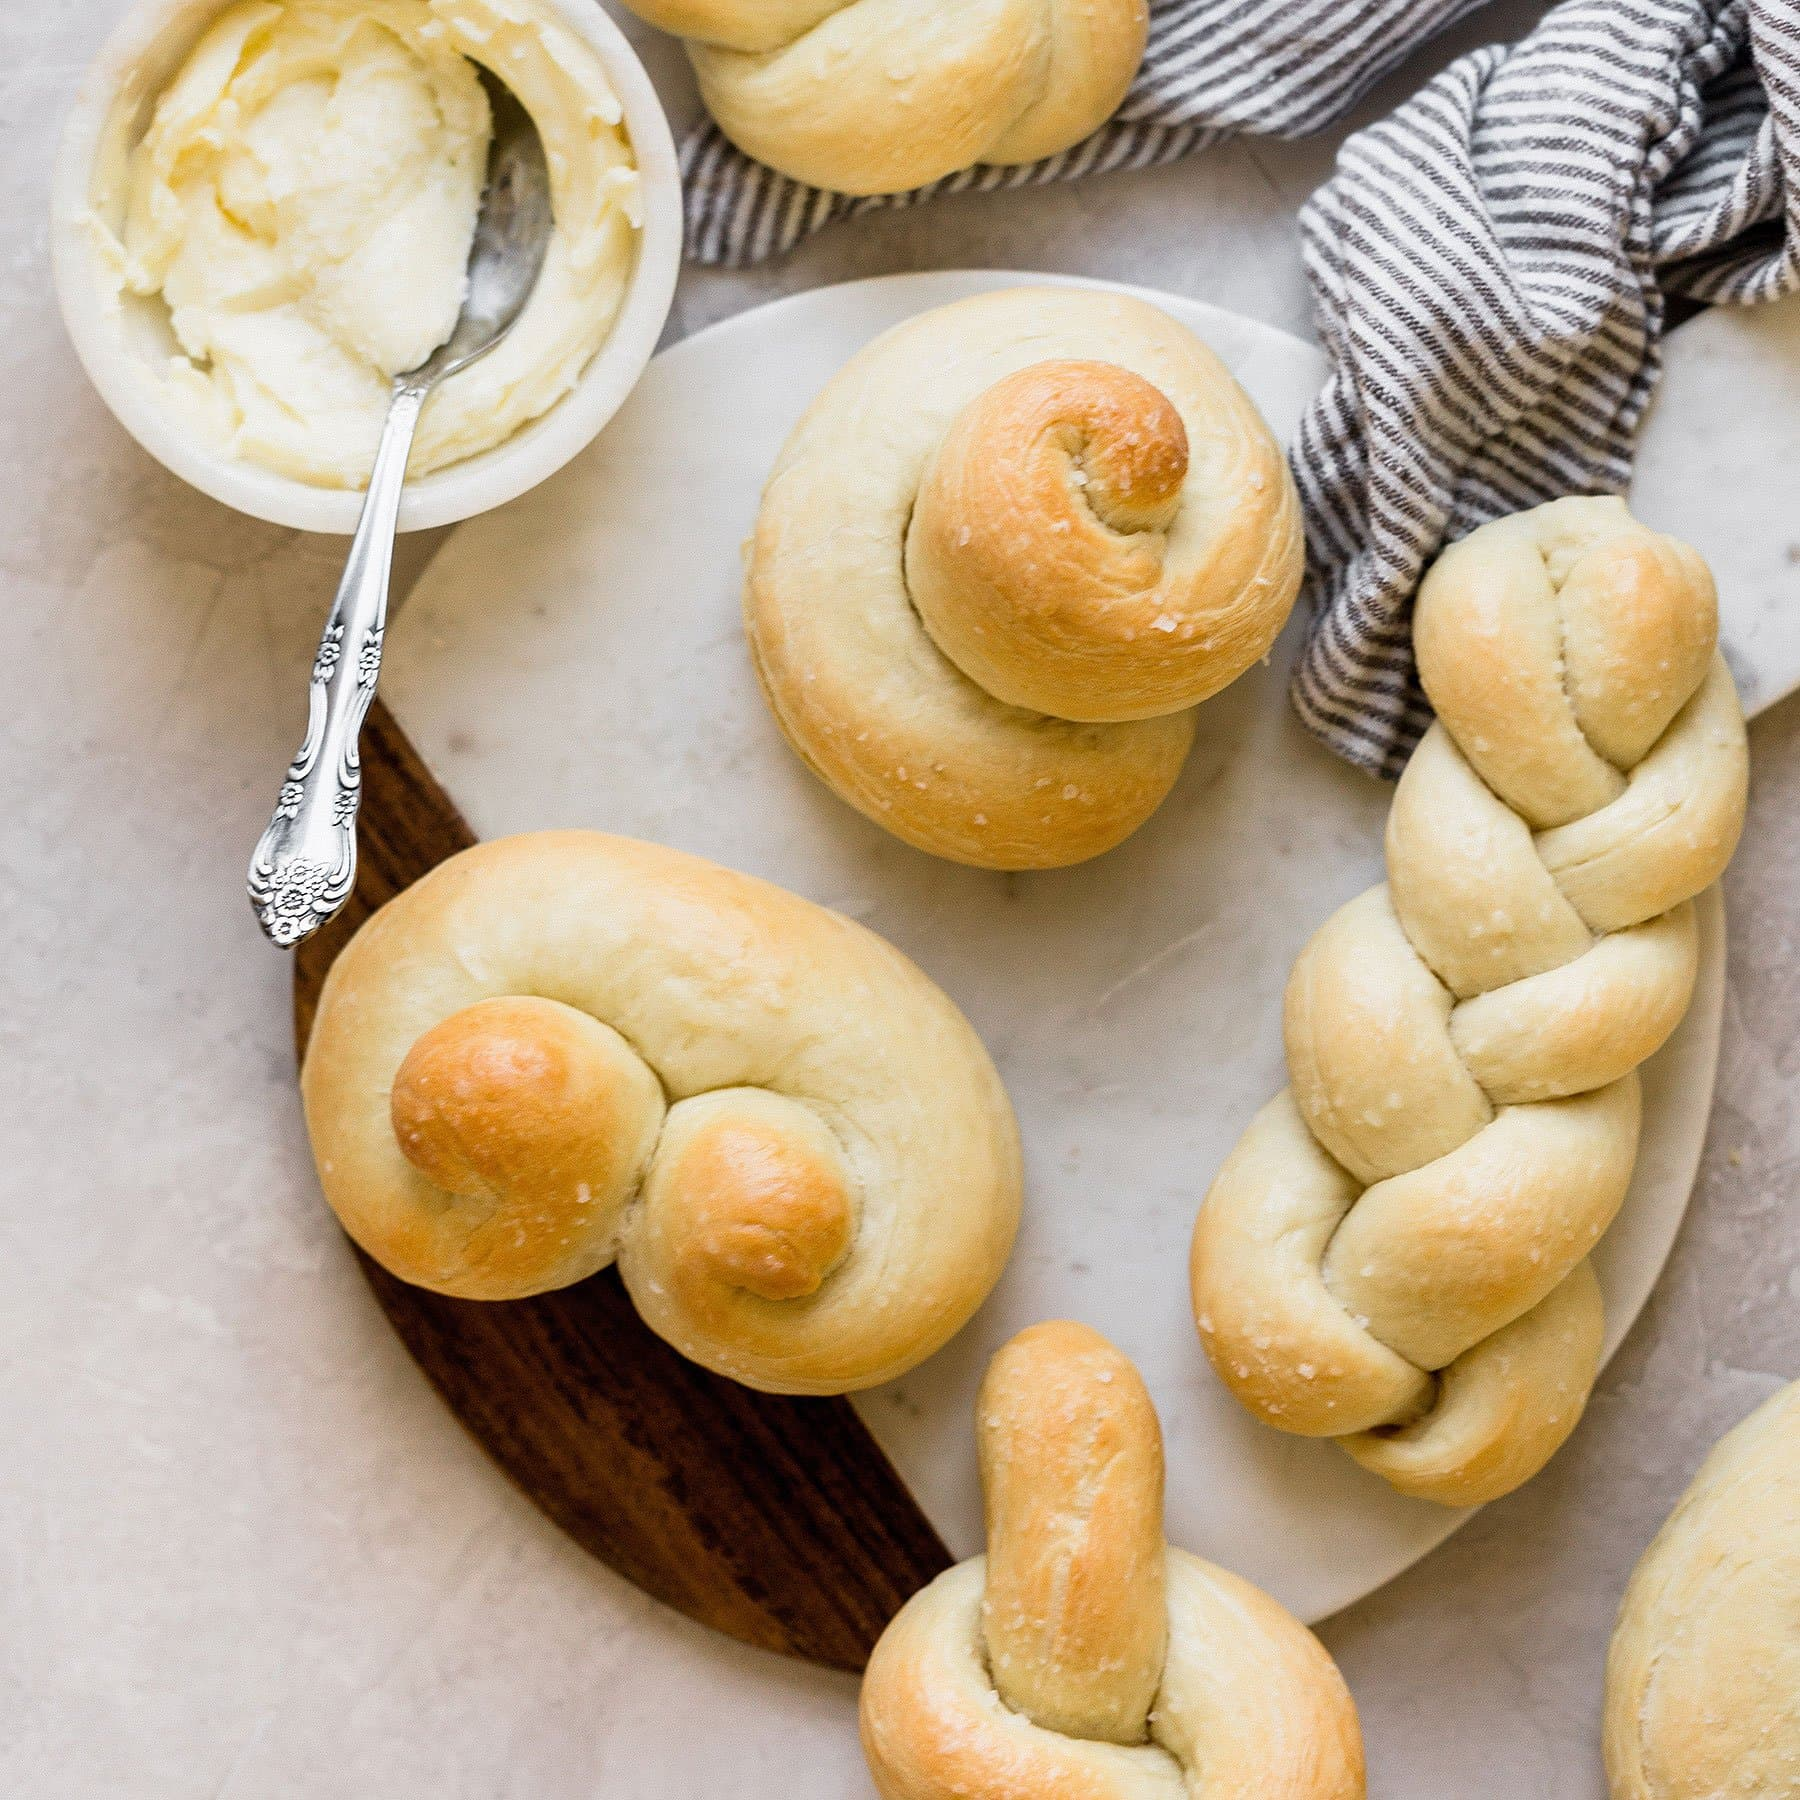 5 EASY ways to shape bread rolls to make them beautiful for any special occasion or holiday!